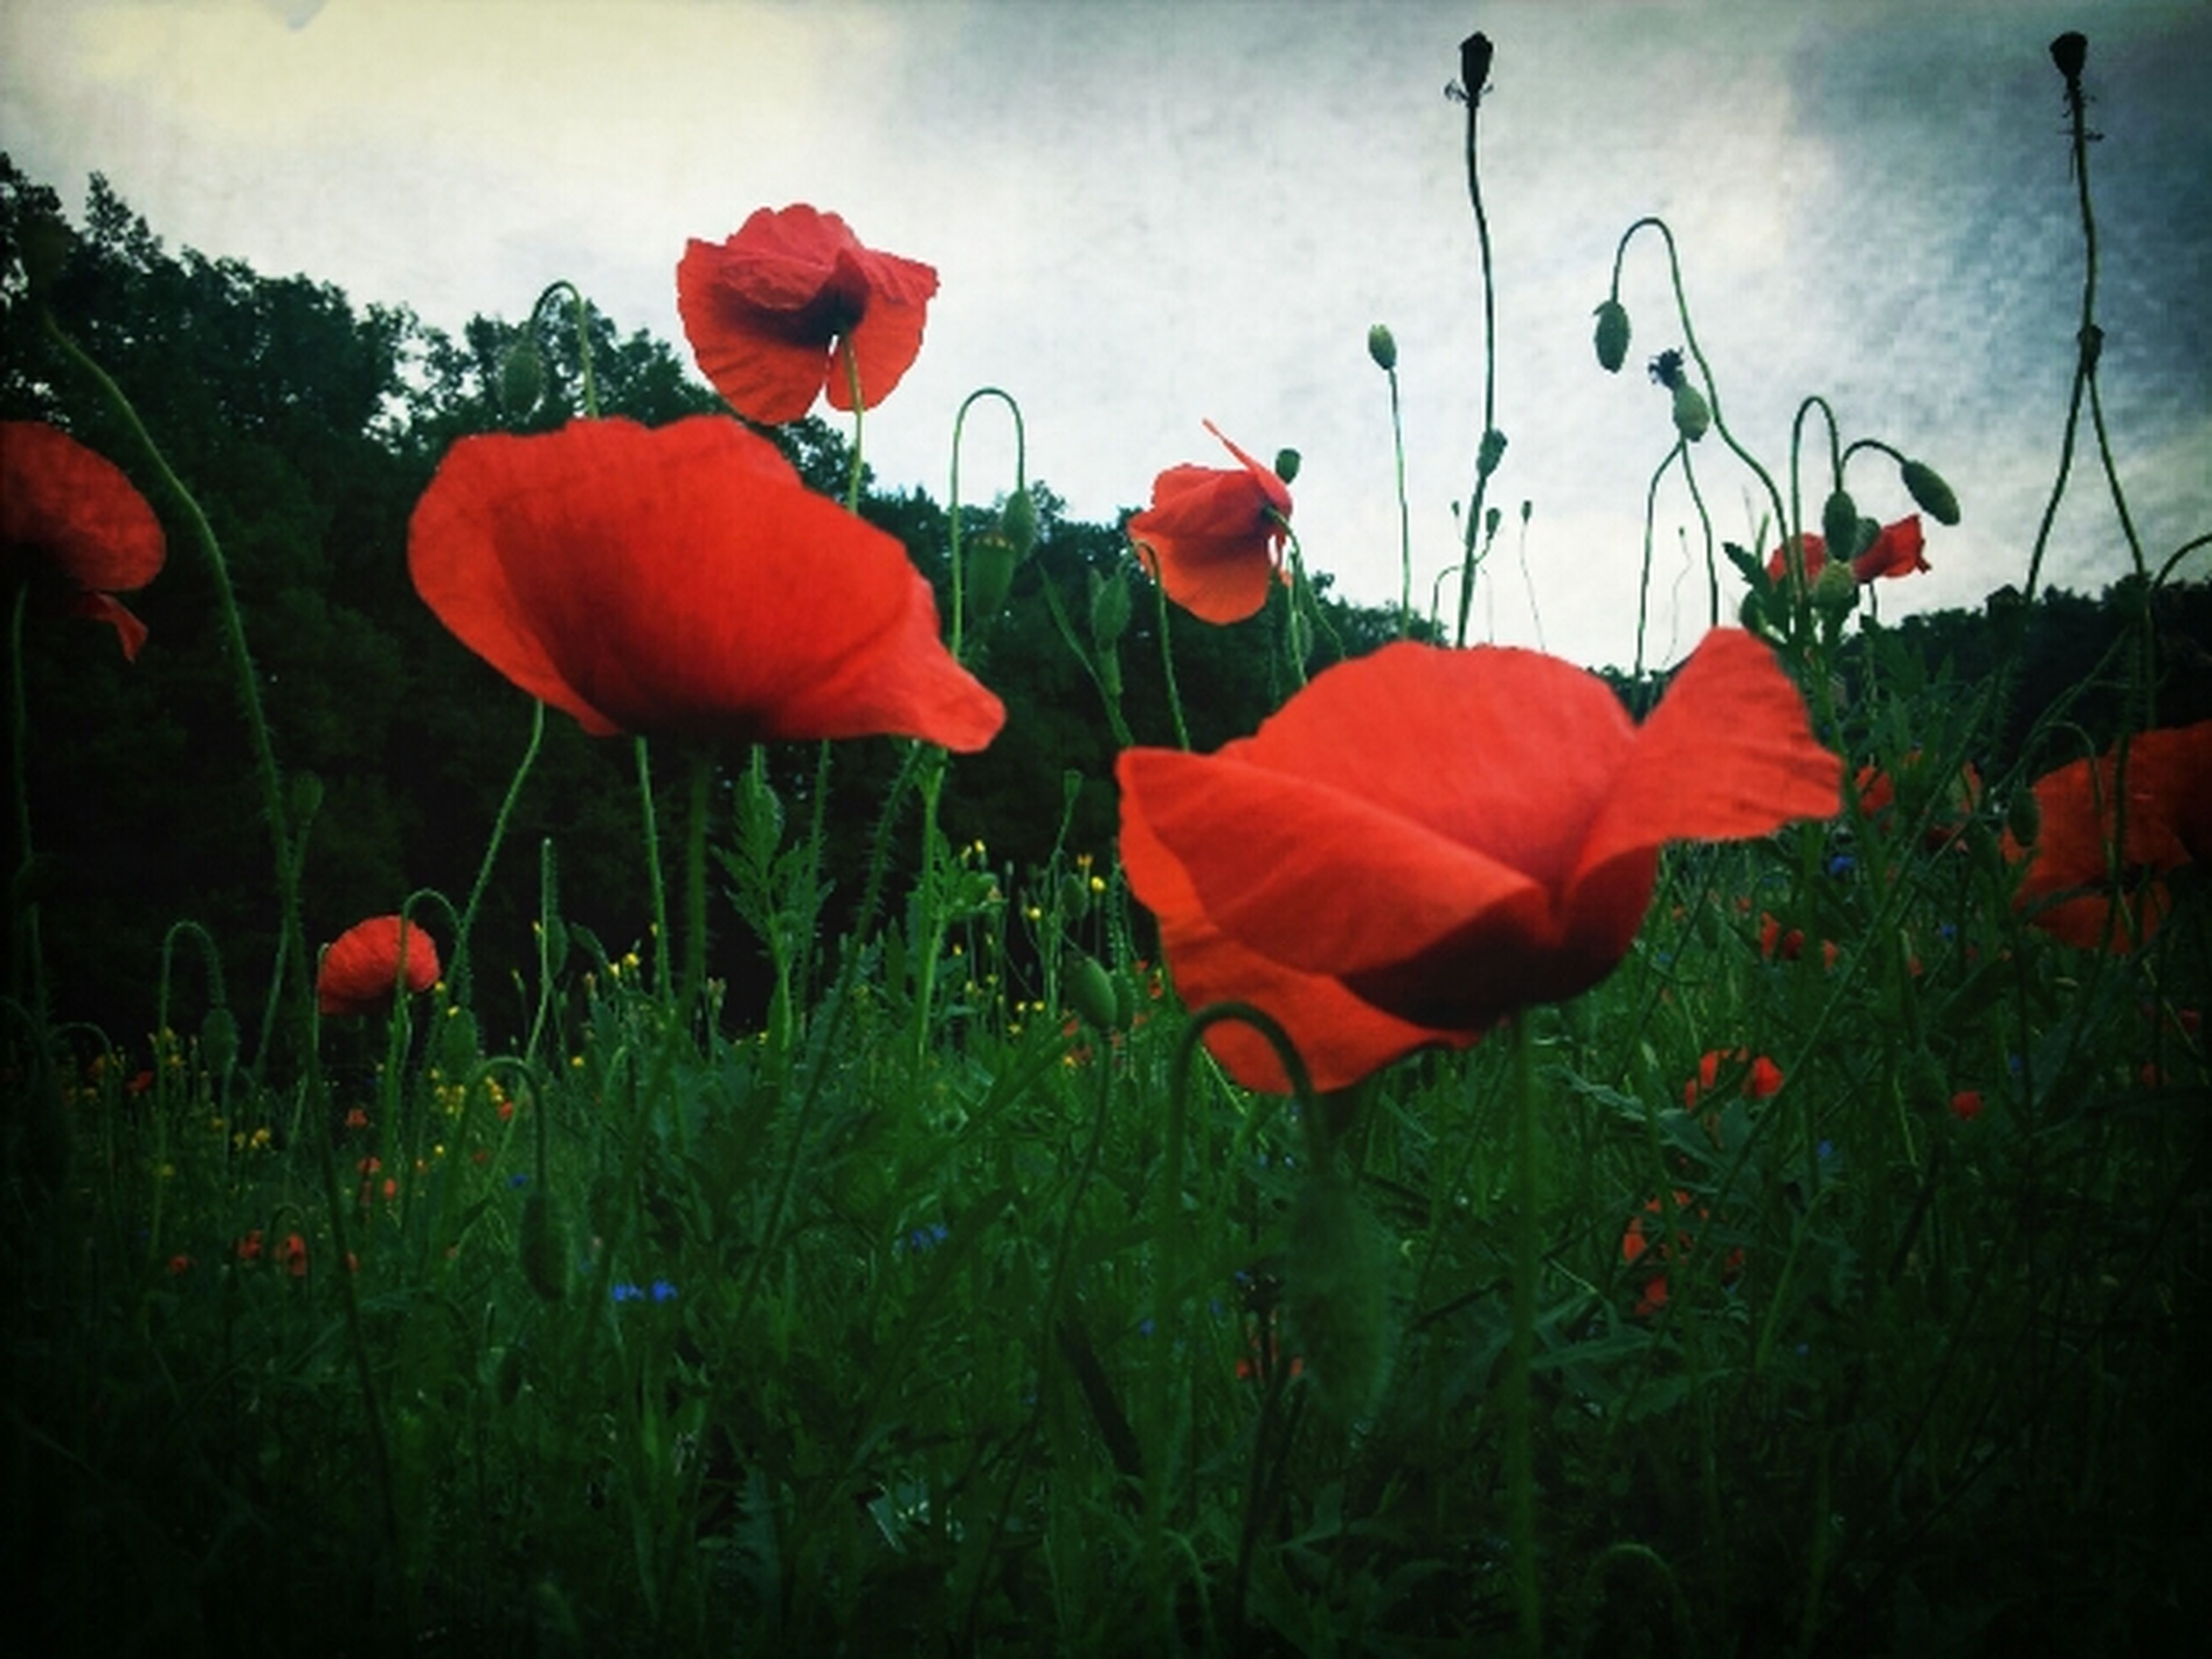 flower, freshness, petal, fragility, red, growth, beauty in nature, flower head, poppy, plant, field, nature, blooming, stem, tulip, in bloom, sky, close-up, blossom, botany